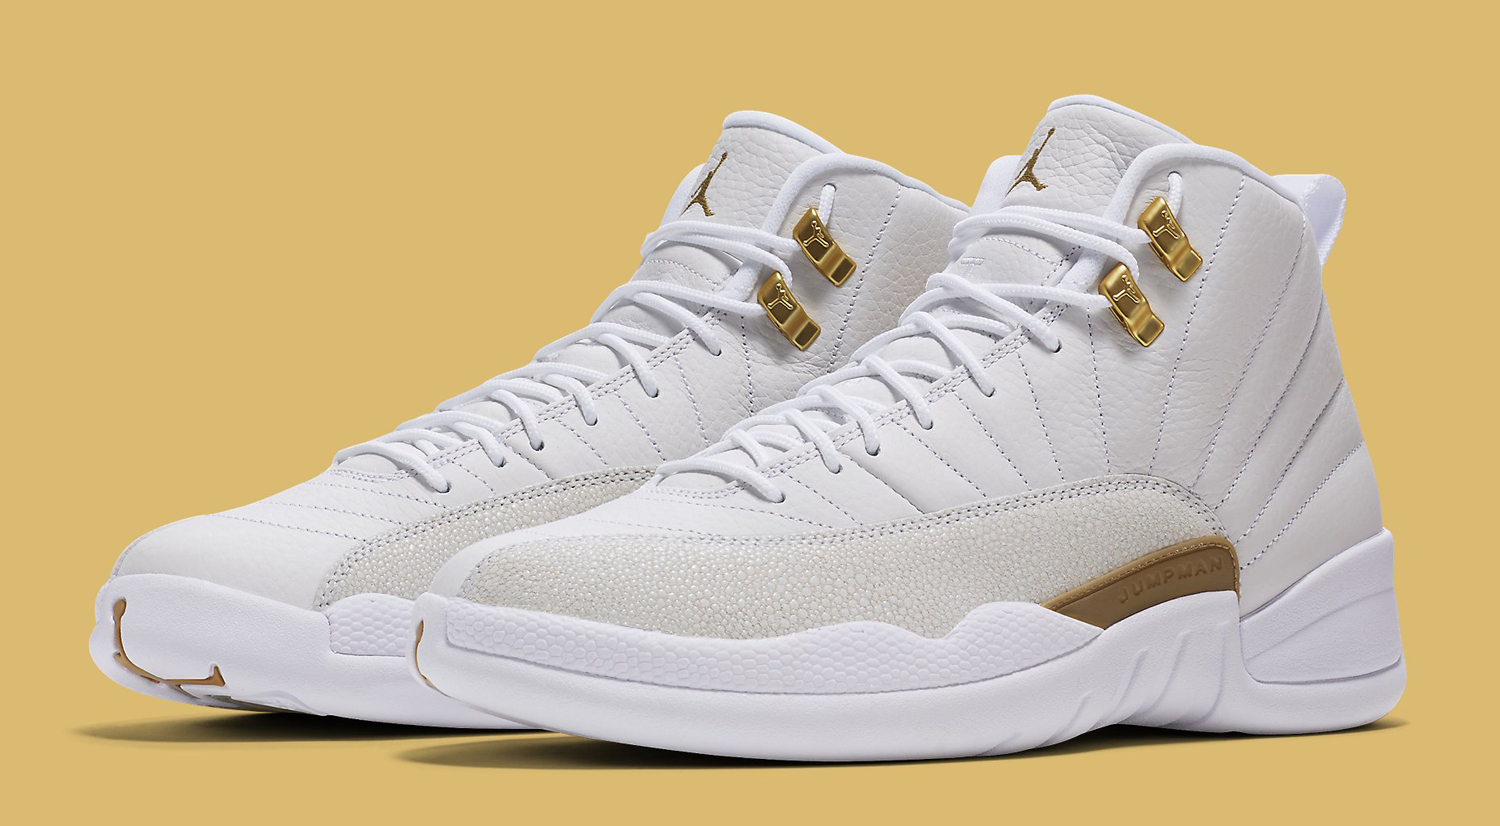 OVO Air Jordan 12 White